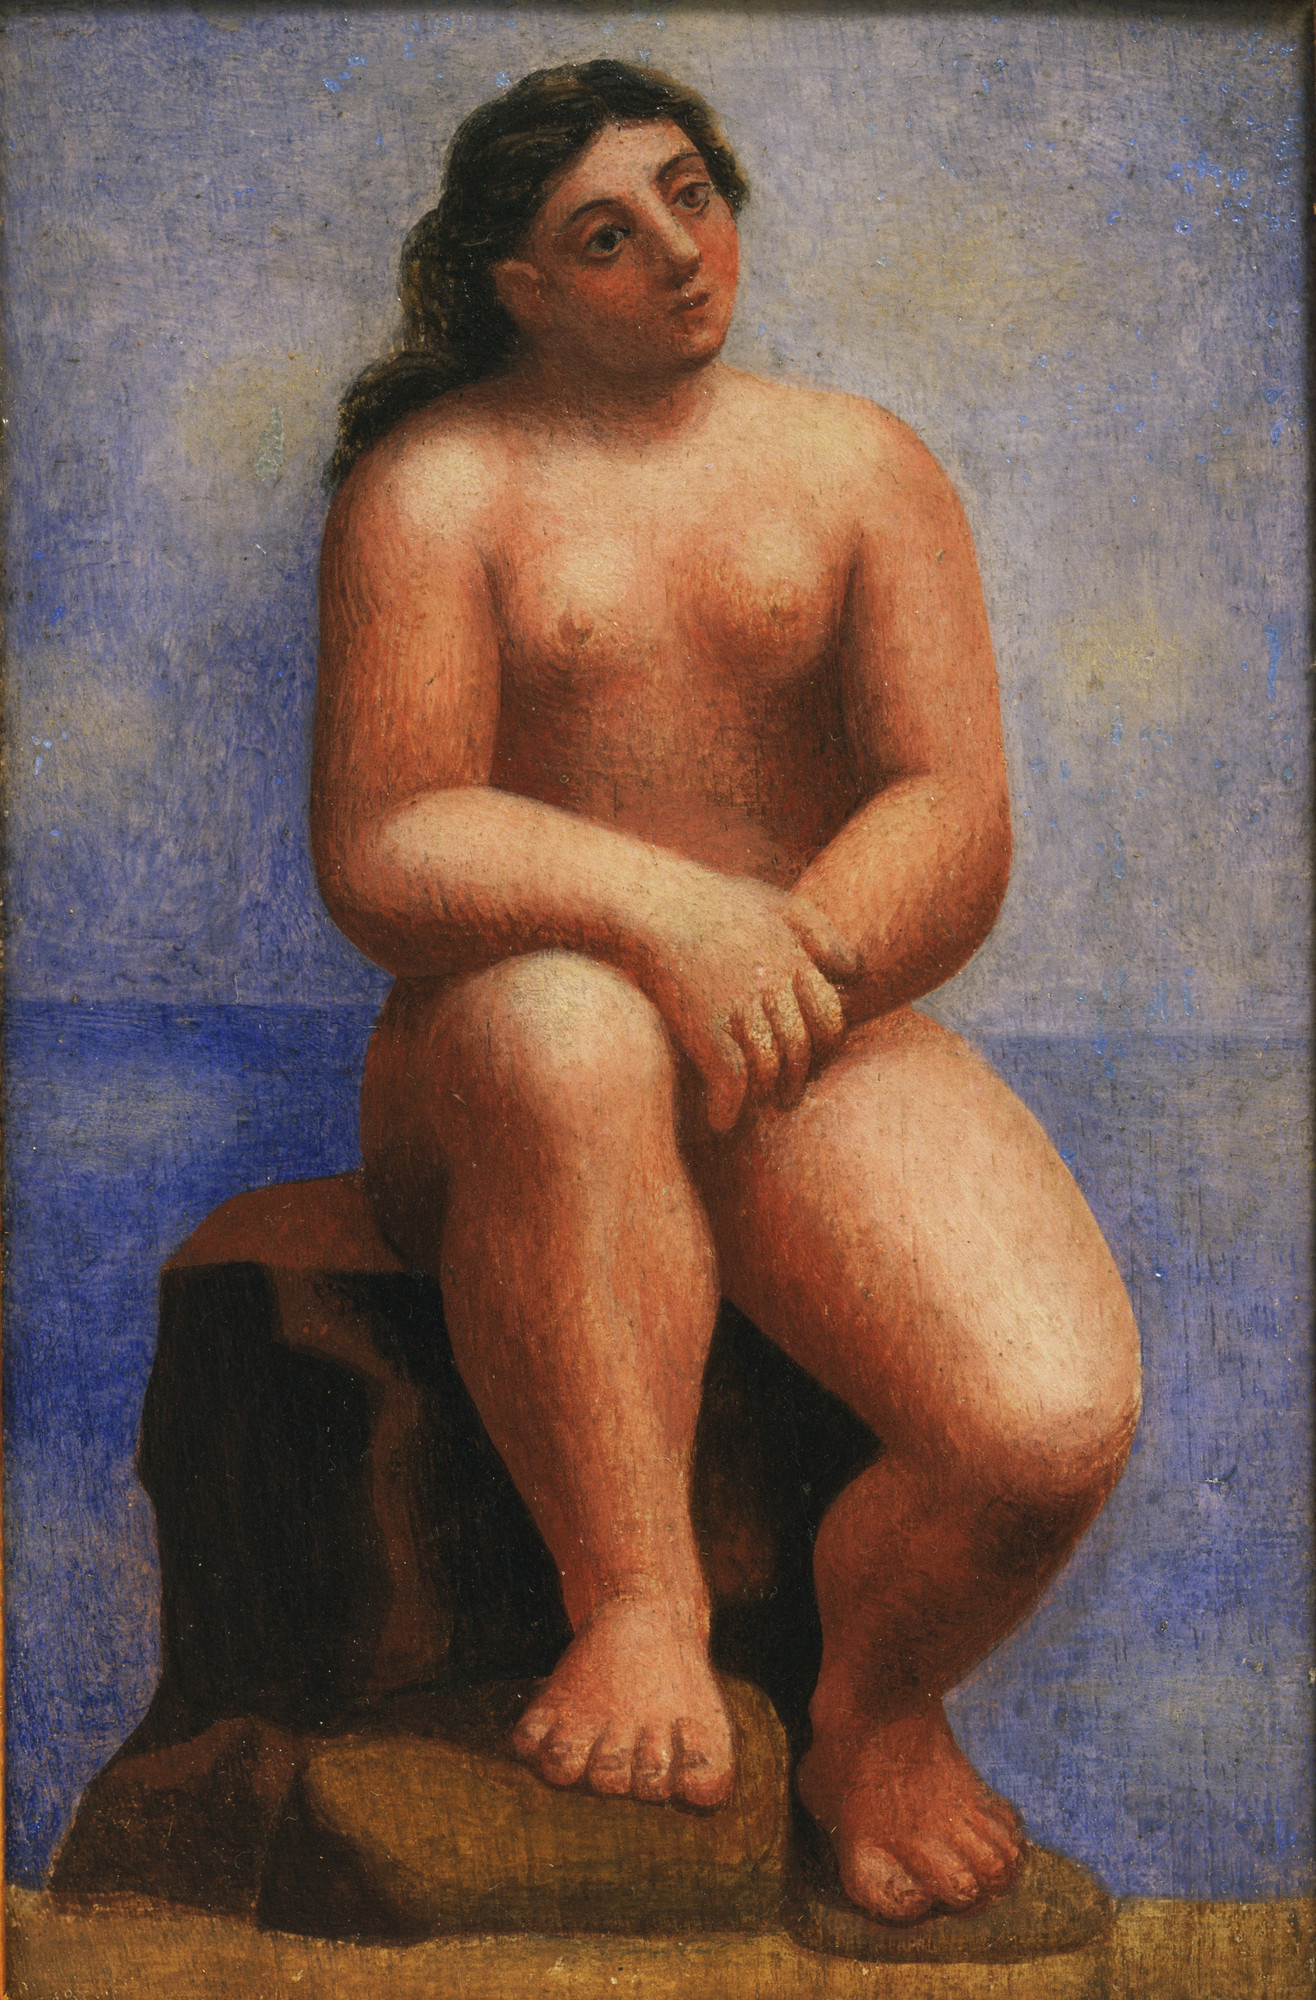 Pablo Picasso. Nude Seated on a Rock. Fontainebleau, summer 1921